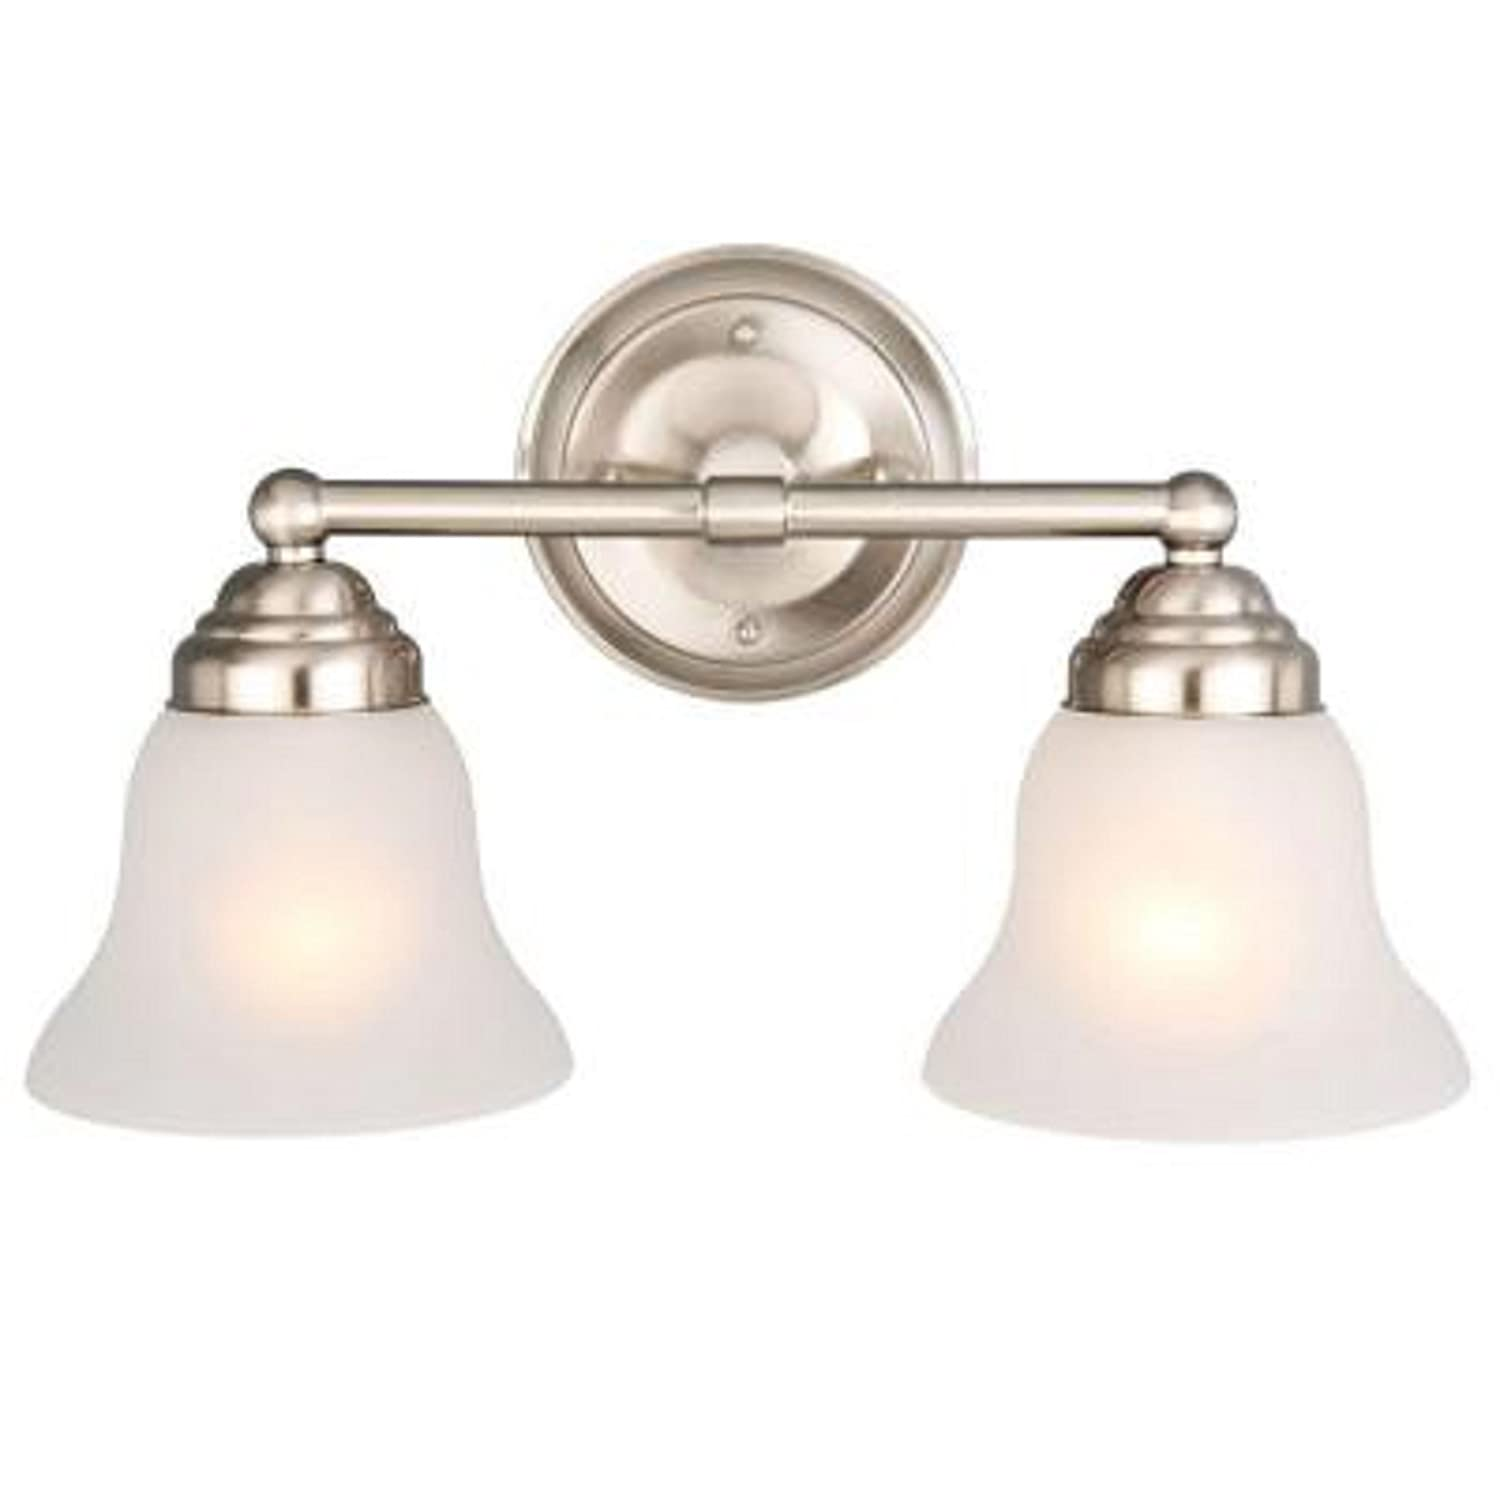 Hampton Bay 2 light Brushed Nickel Vanity Amazon